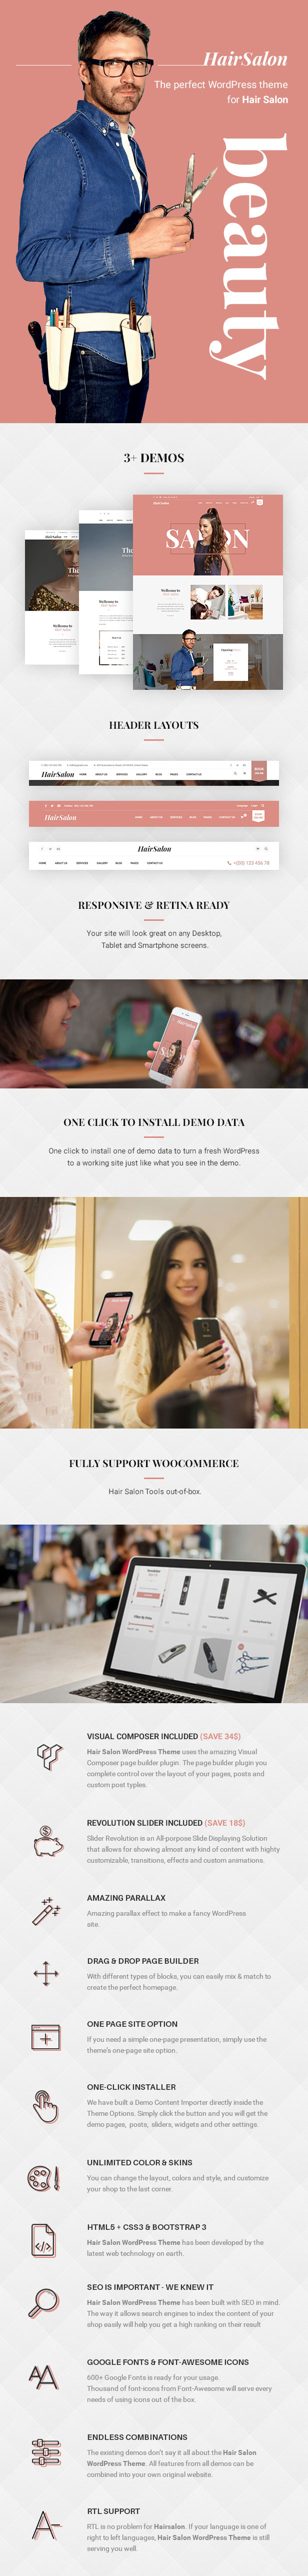 Hair Salon WordPress Theme - HairSalon WP